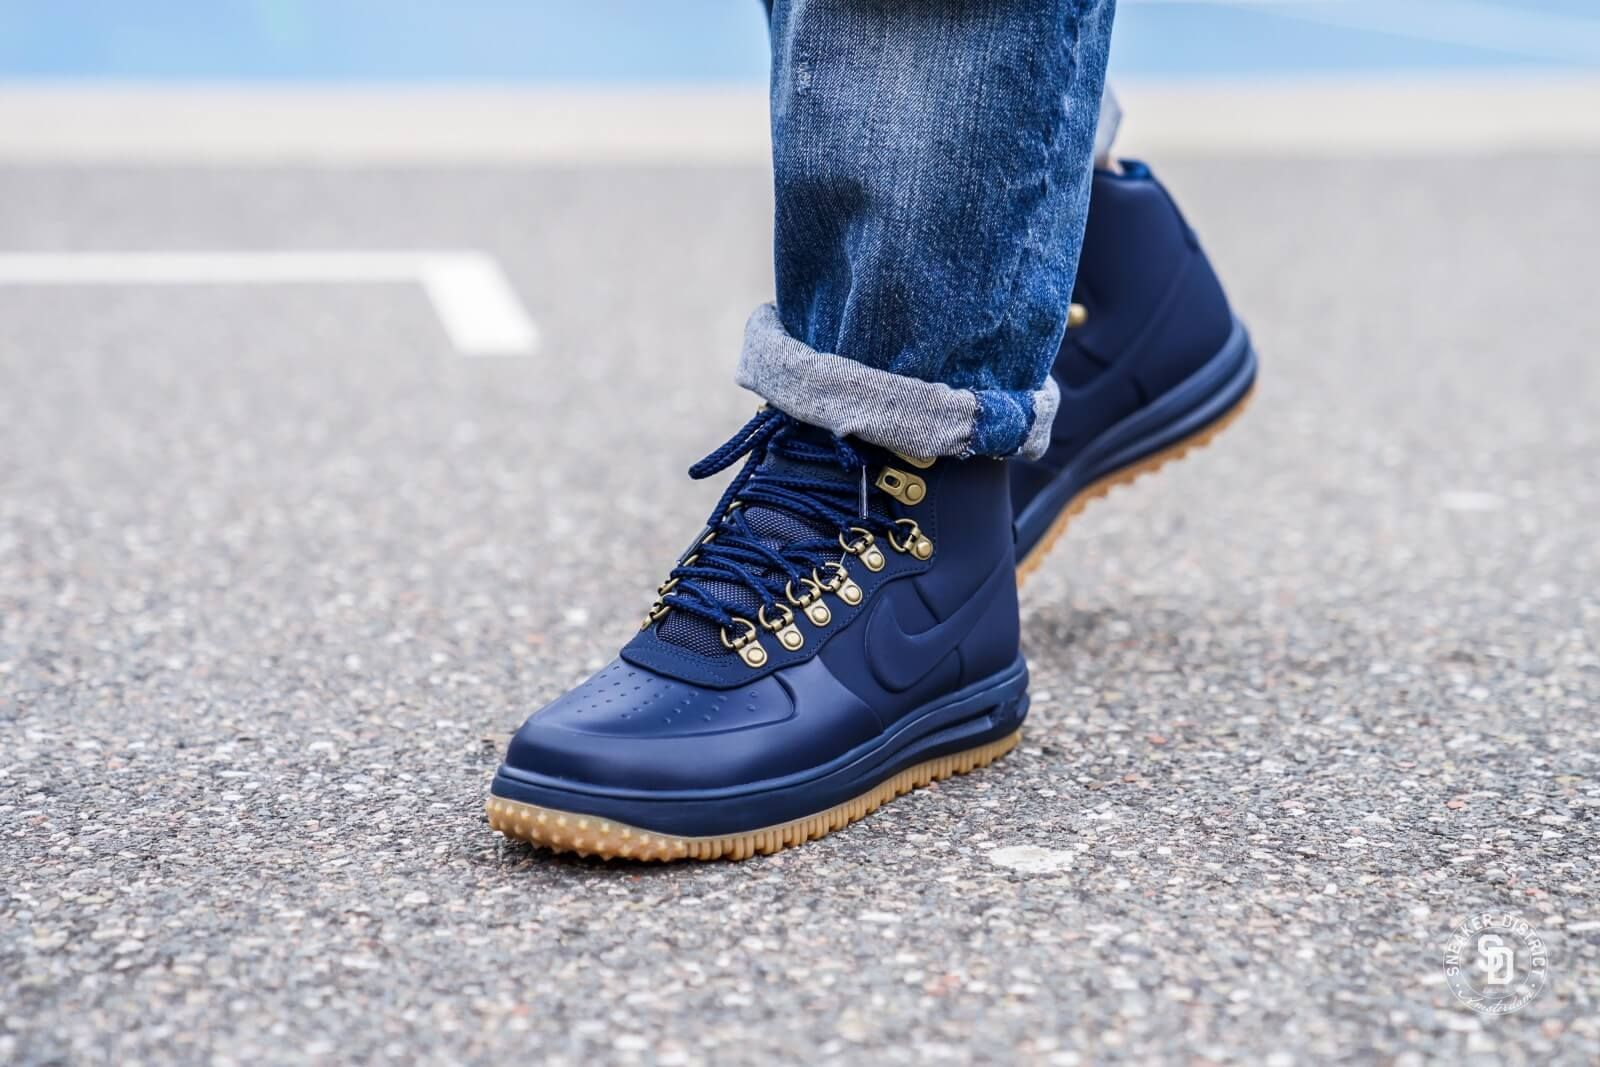 competitive price 7aae0 a3186 Nike Lunar Force 1 Duckboot  18 Obsidian Gum